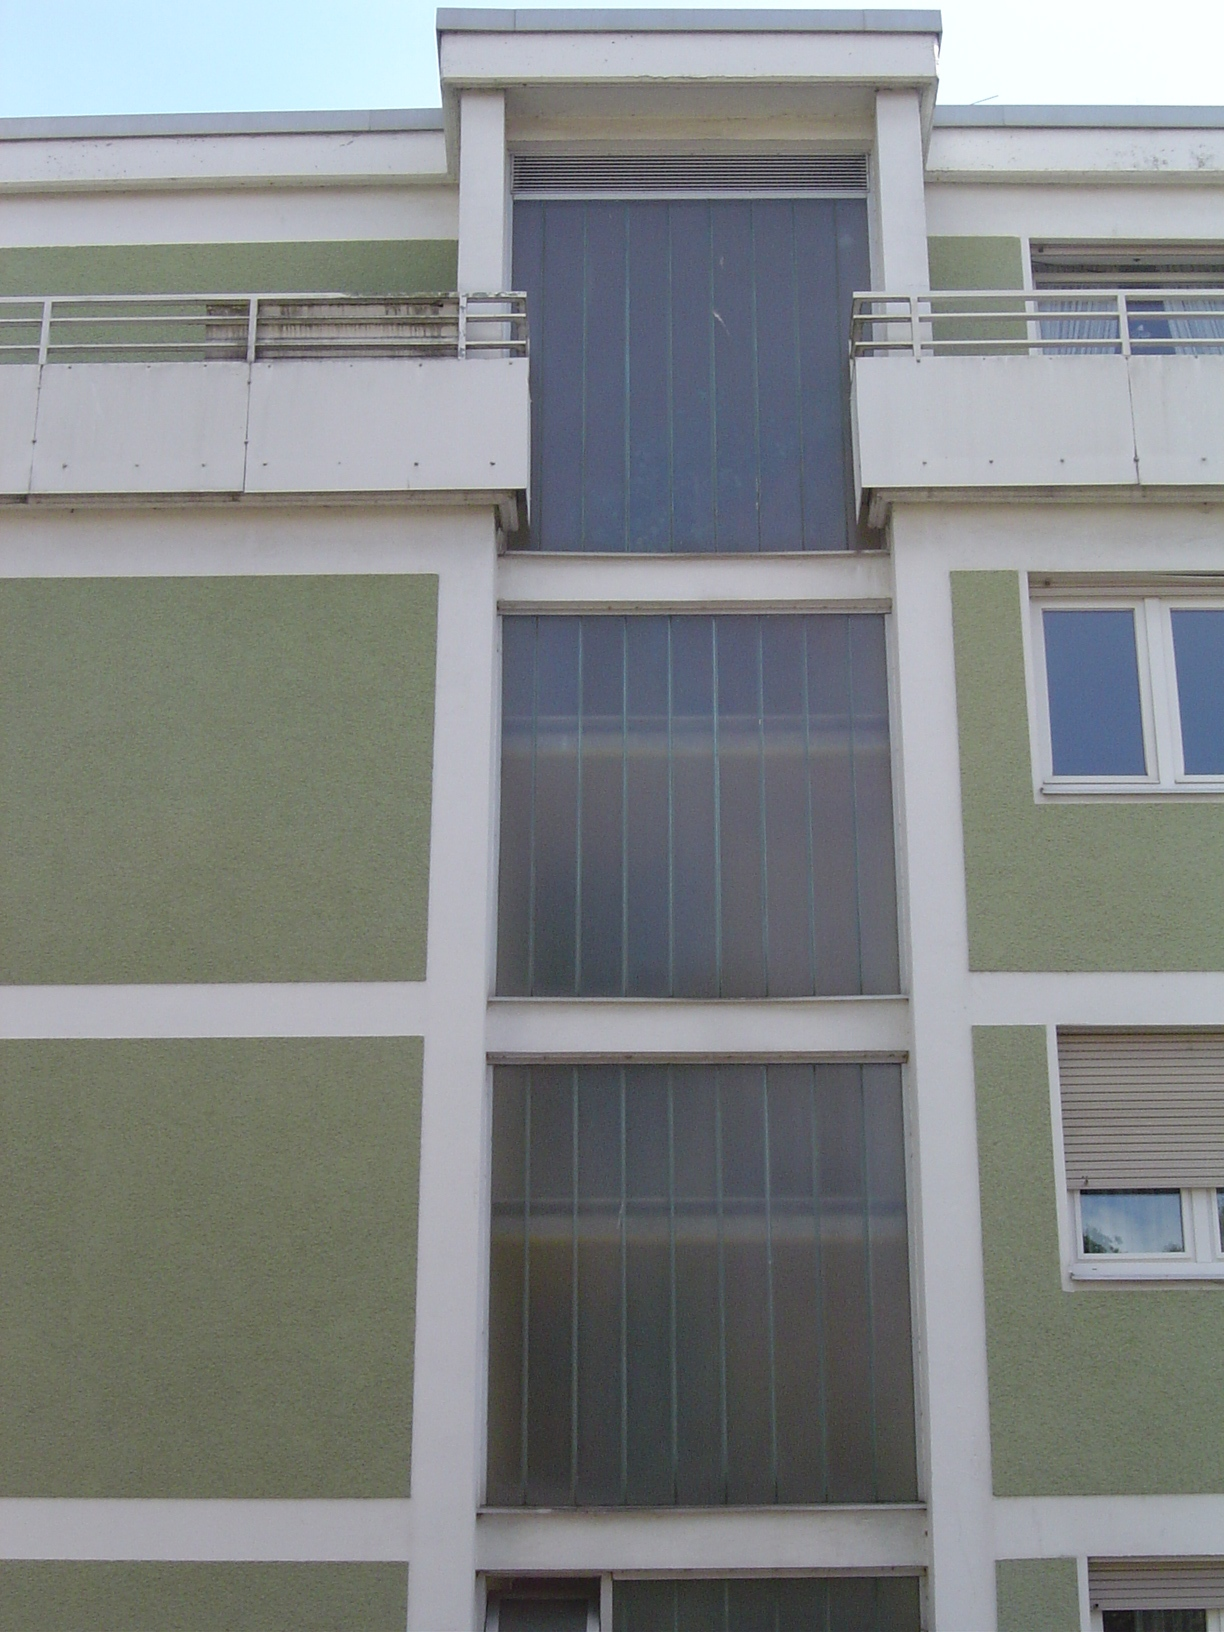 rigoletto building block of flats windows green white windows